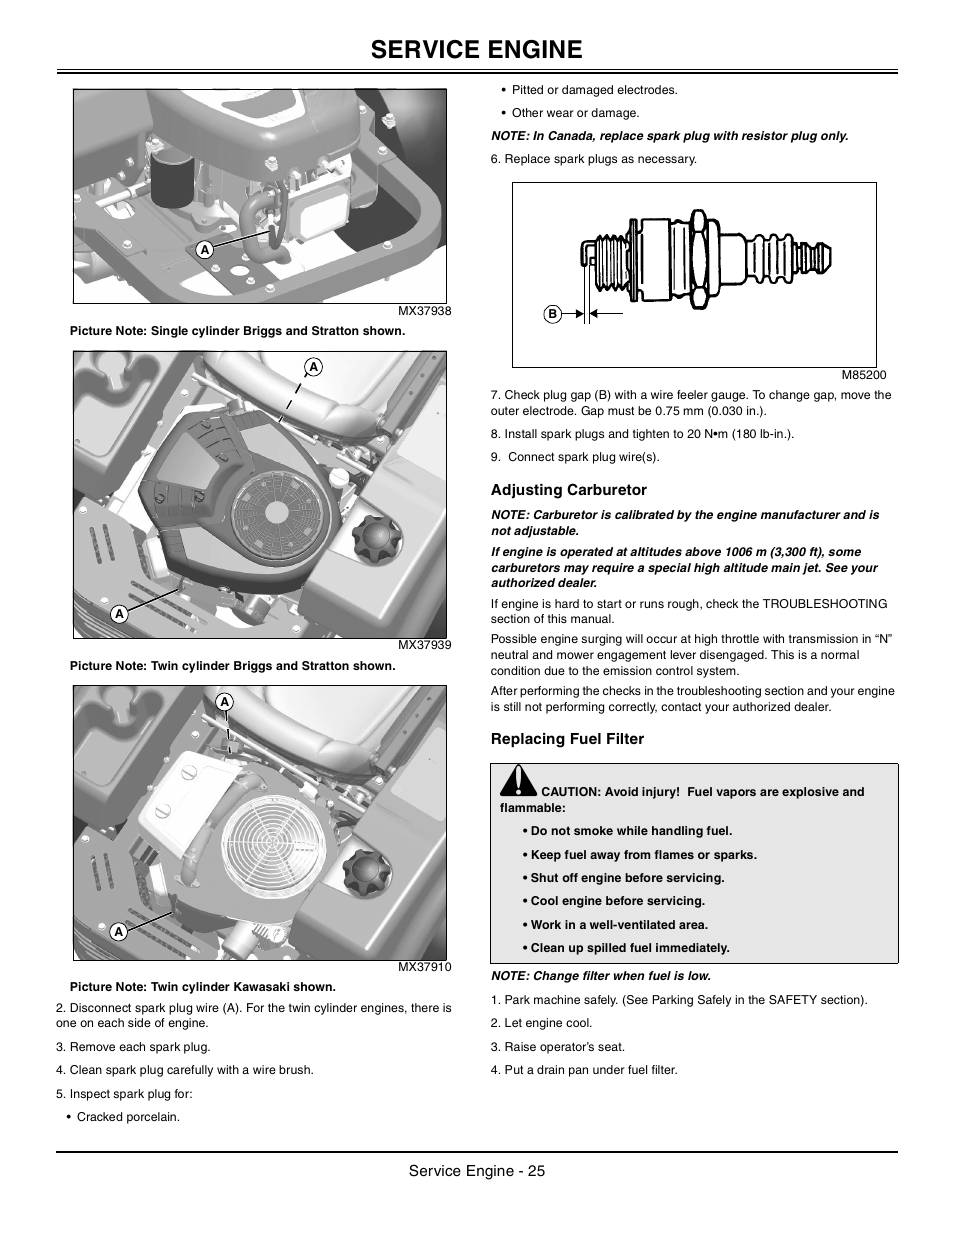 Adjusting Carburetor  Replacing Fuel Filter  Service